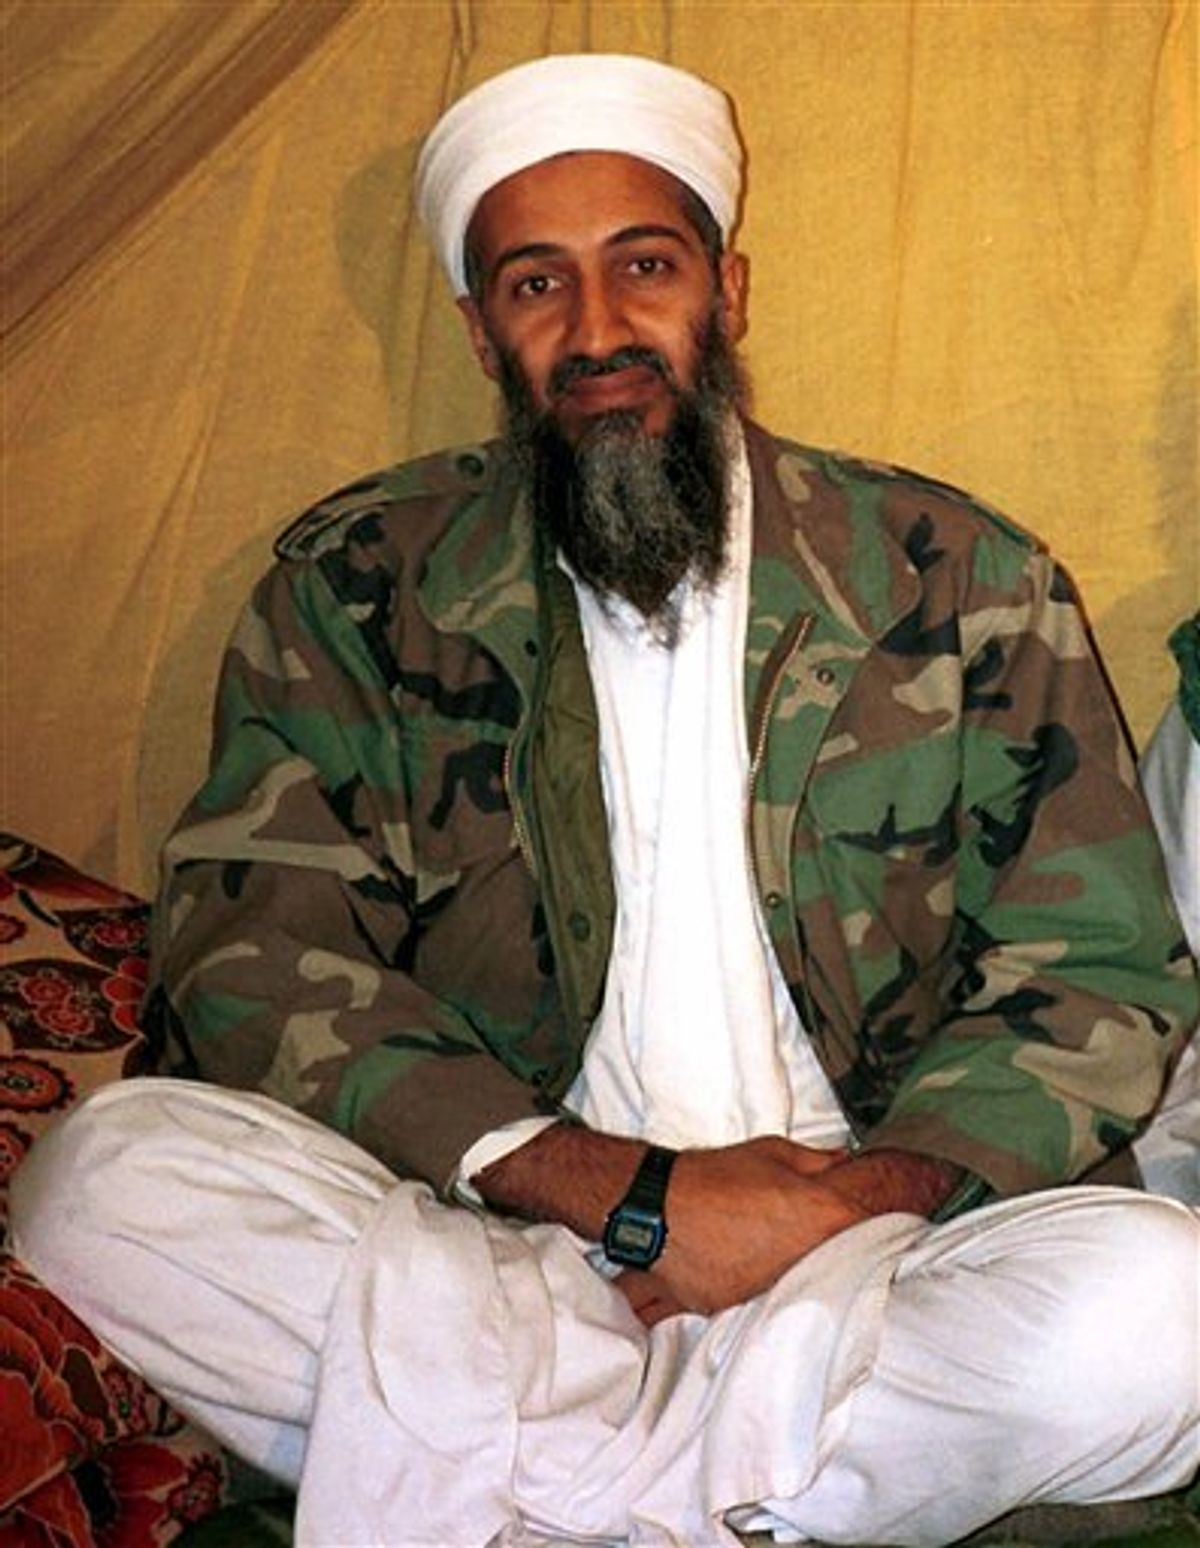 FILE -This undated file photo, shows Osama bin Laden. Americans are expected to get a glimpse of Osama bin Laden's daily life with the disclosure of home videos showing him strolling around his secret compound, along with propaganda tapes that have never been made public (AP Photo/File) (AP)